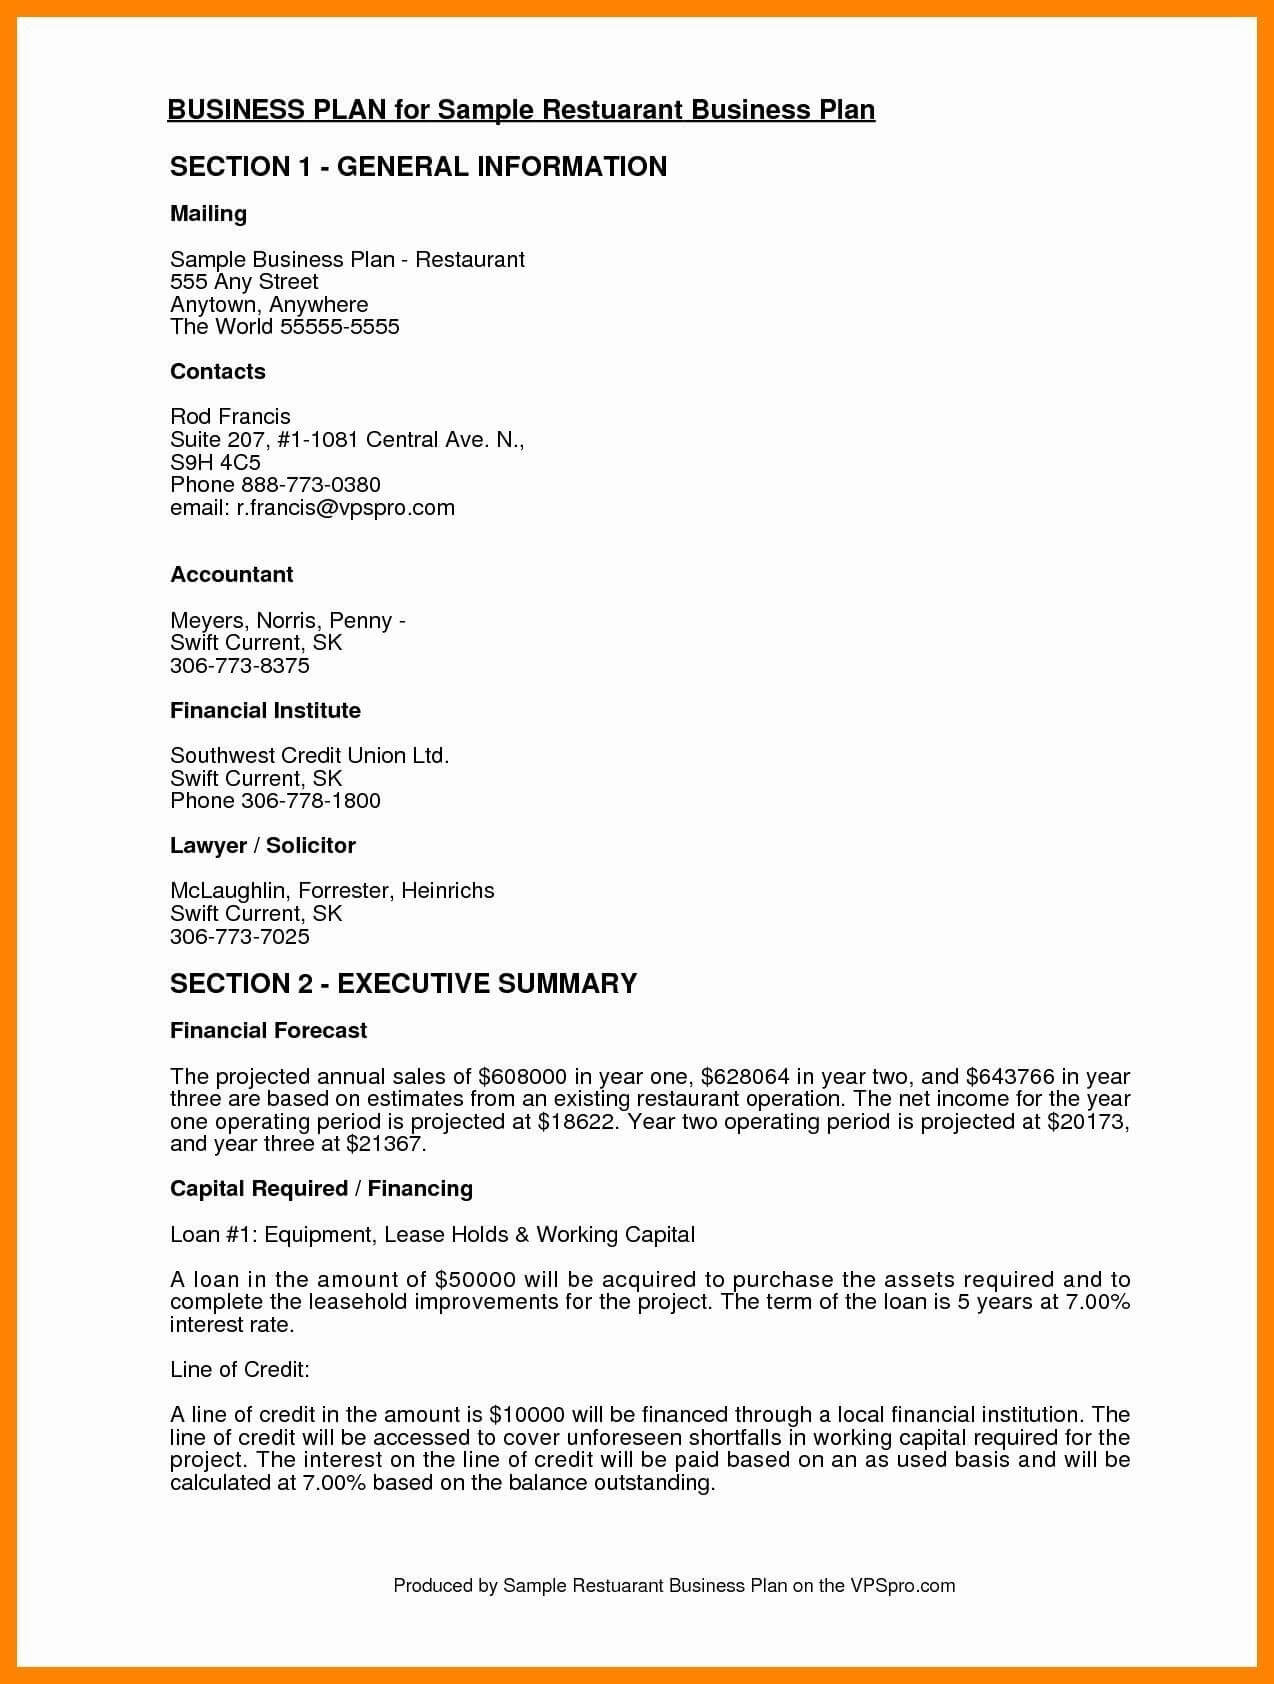 Business Plans Plan Template Reviews Growthink Free For Business Plan Template Reviews